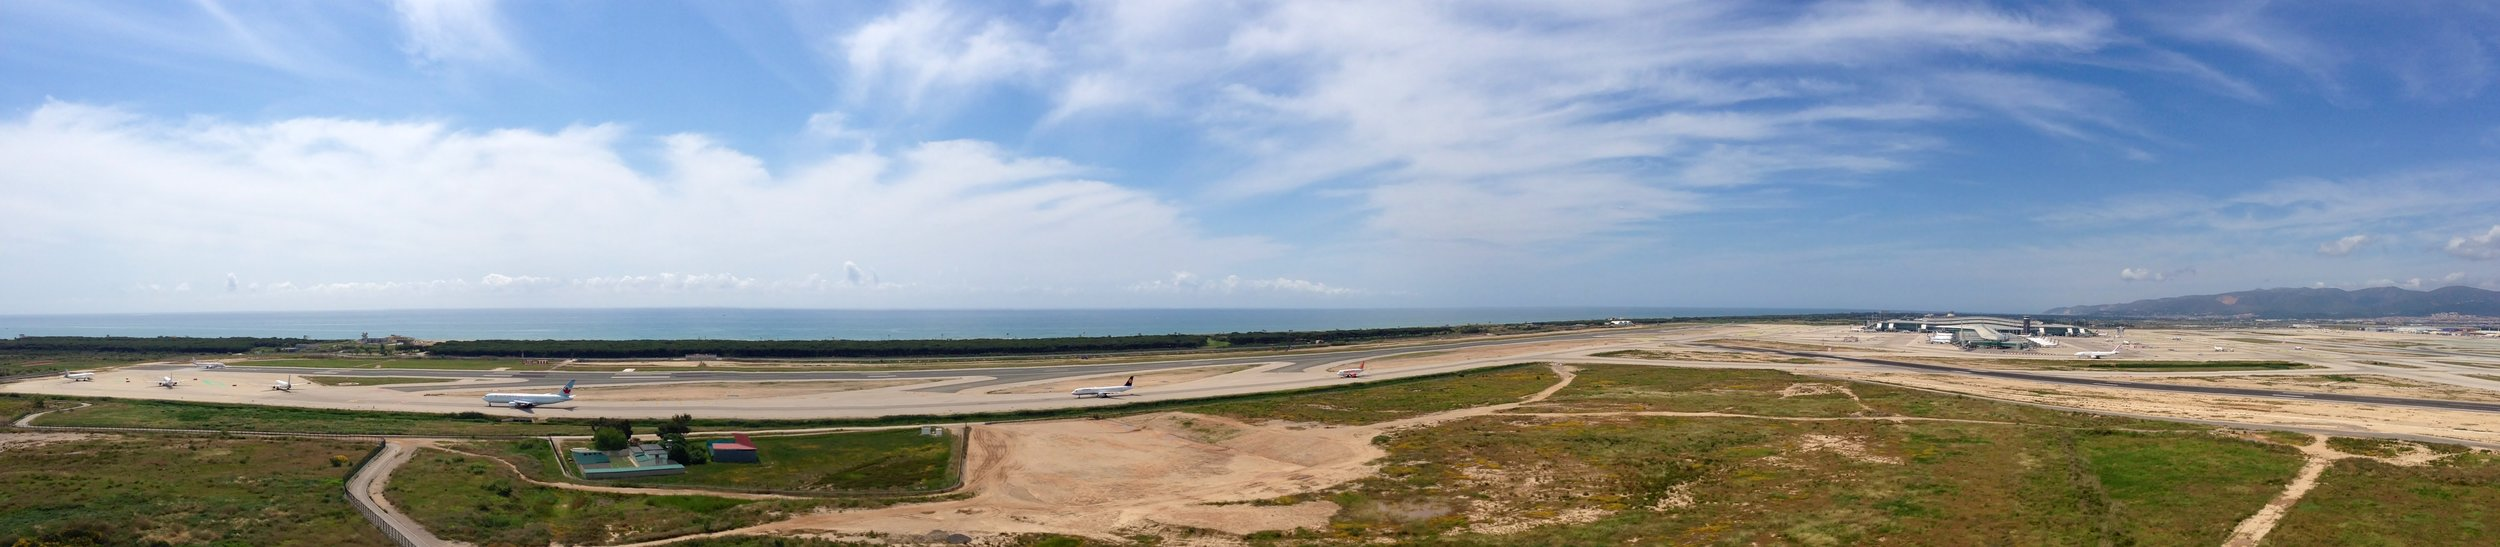 Panoramic view of Barcelona El Prat airport